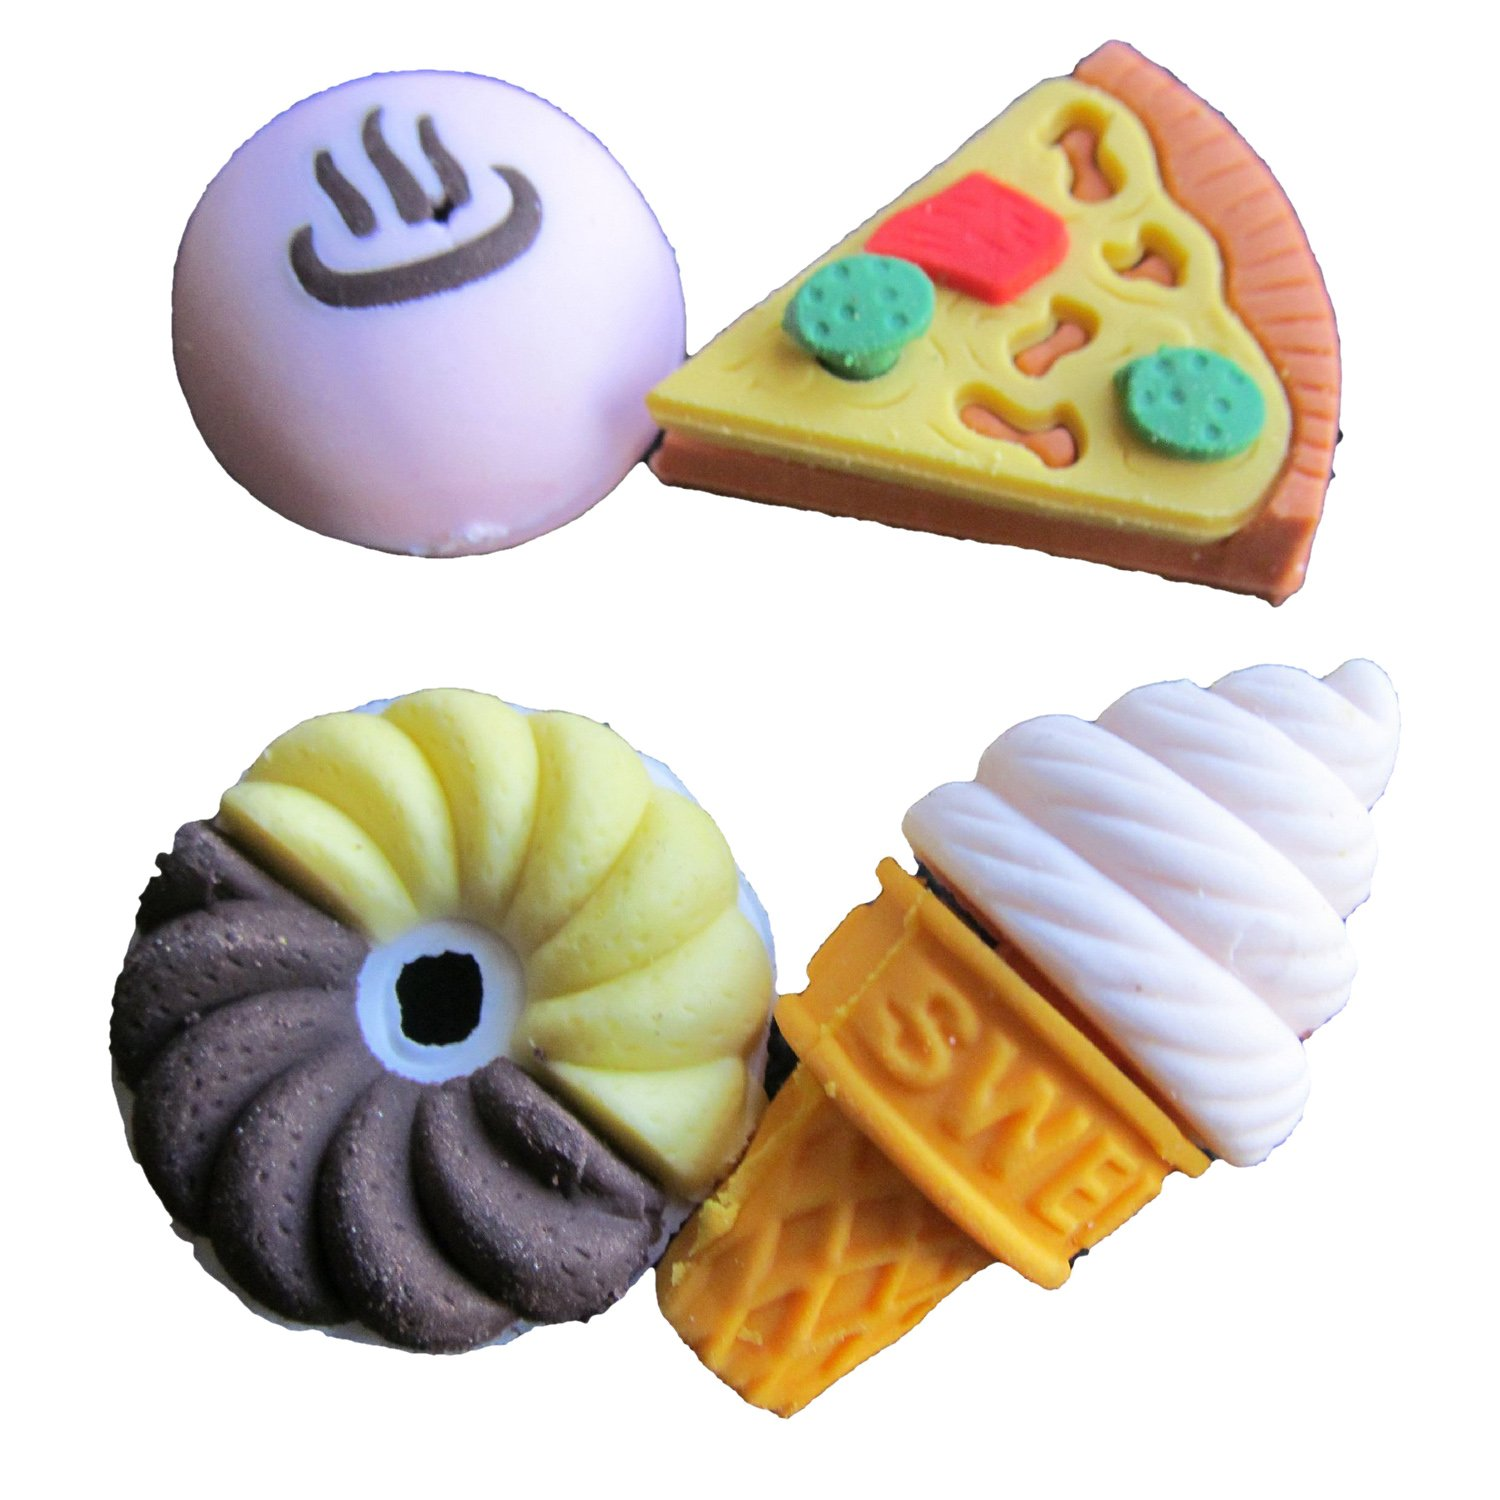 SODIAL(R) Assorted Food Novelty Cute Pencil Rubber Eraser Erasers Stationery Ice Cream Cake Kid Fun Toy